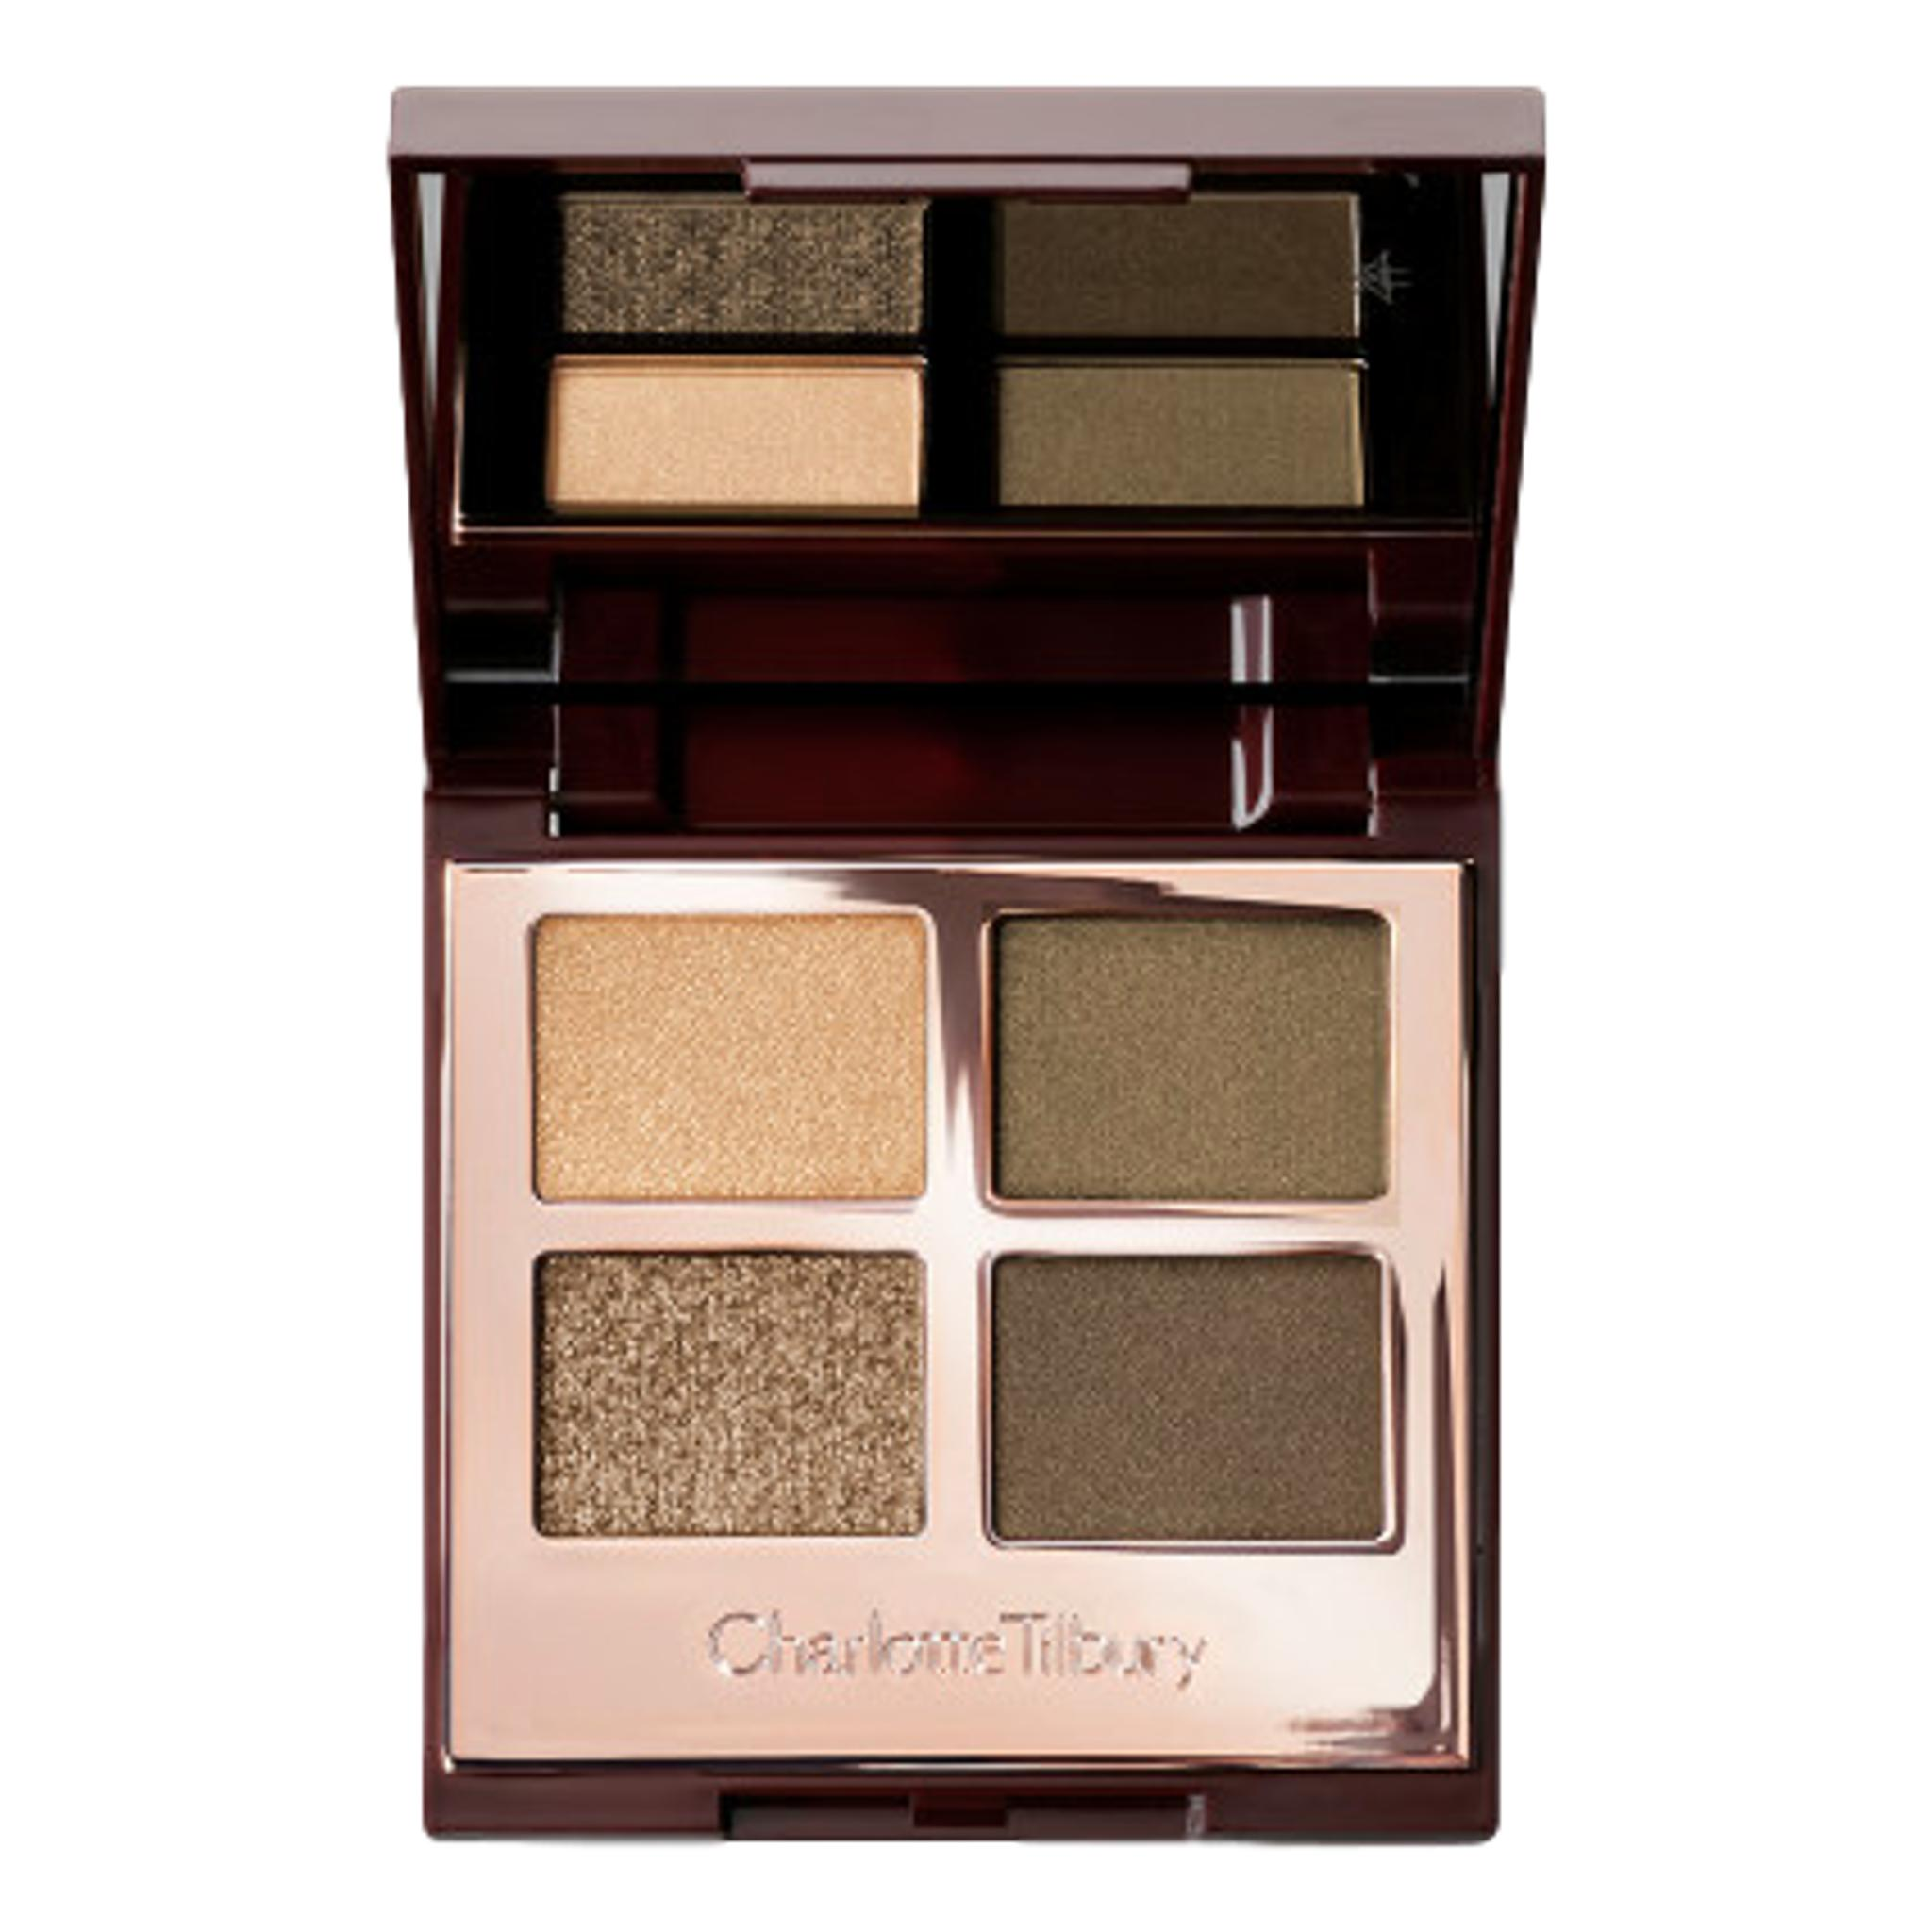 Charlotte Tilbury Luxury Eyeshadow Palette - The Rebel, eyeshadow palette, London Loves Beauty